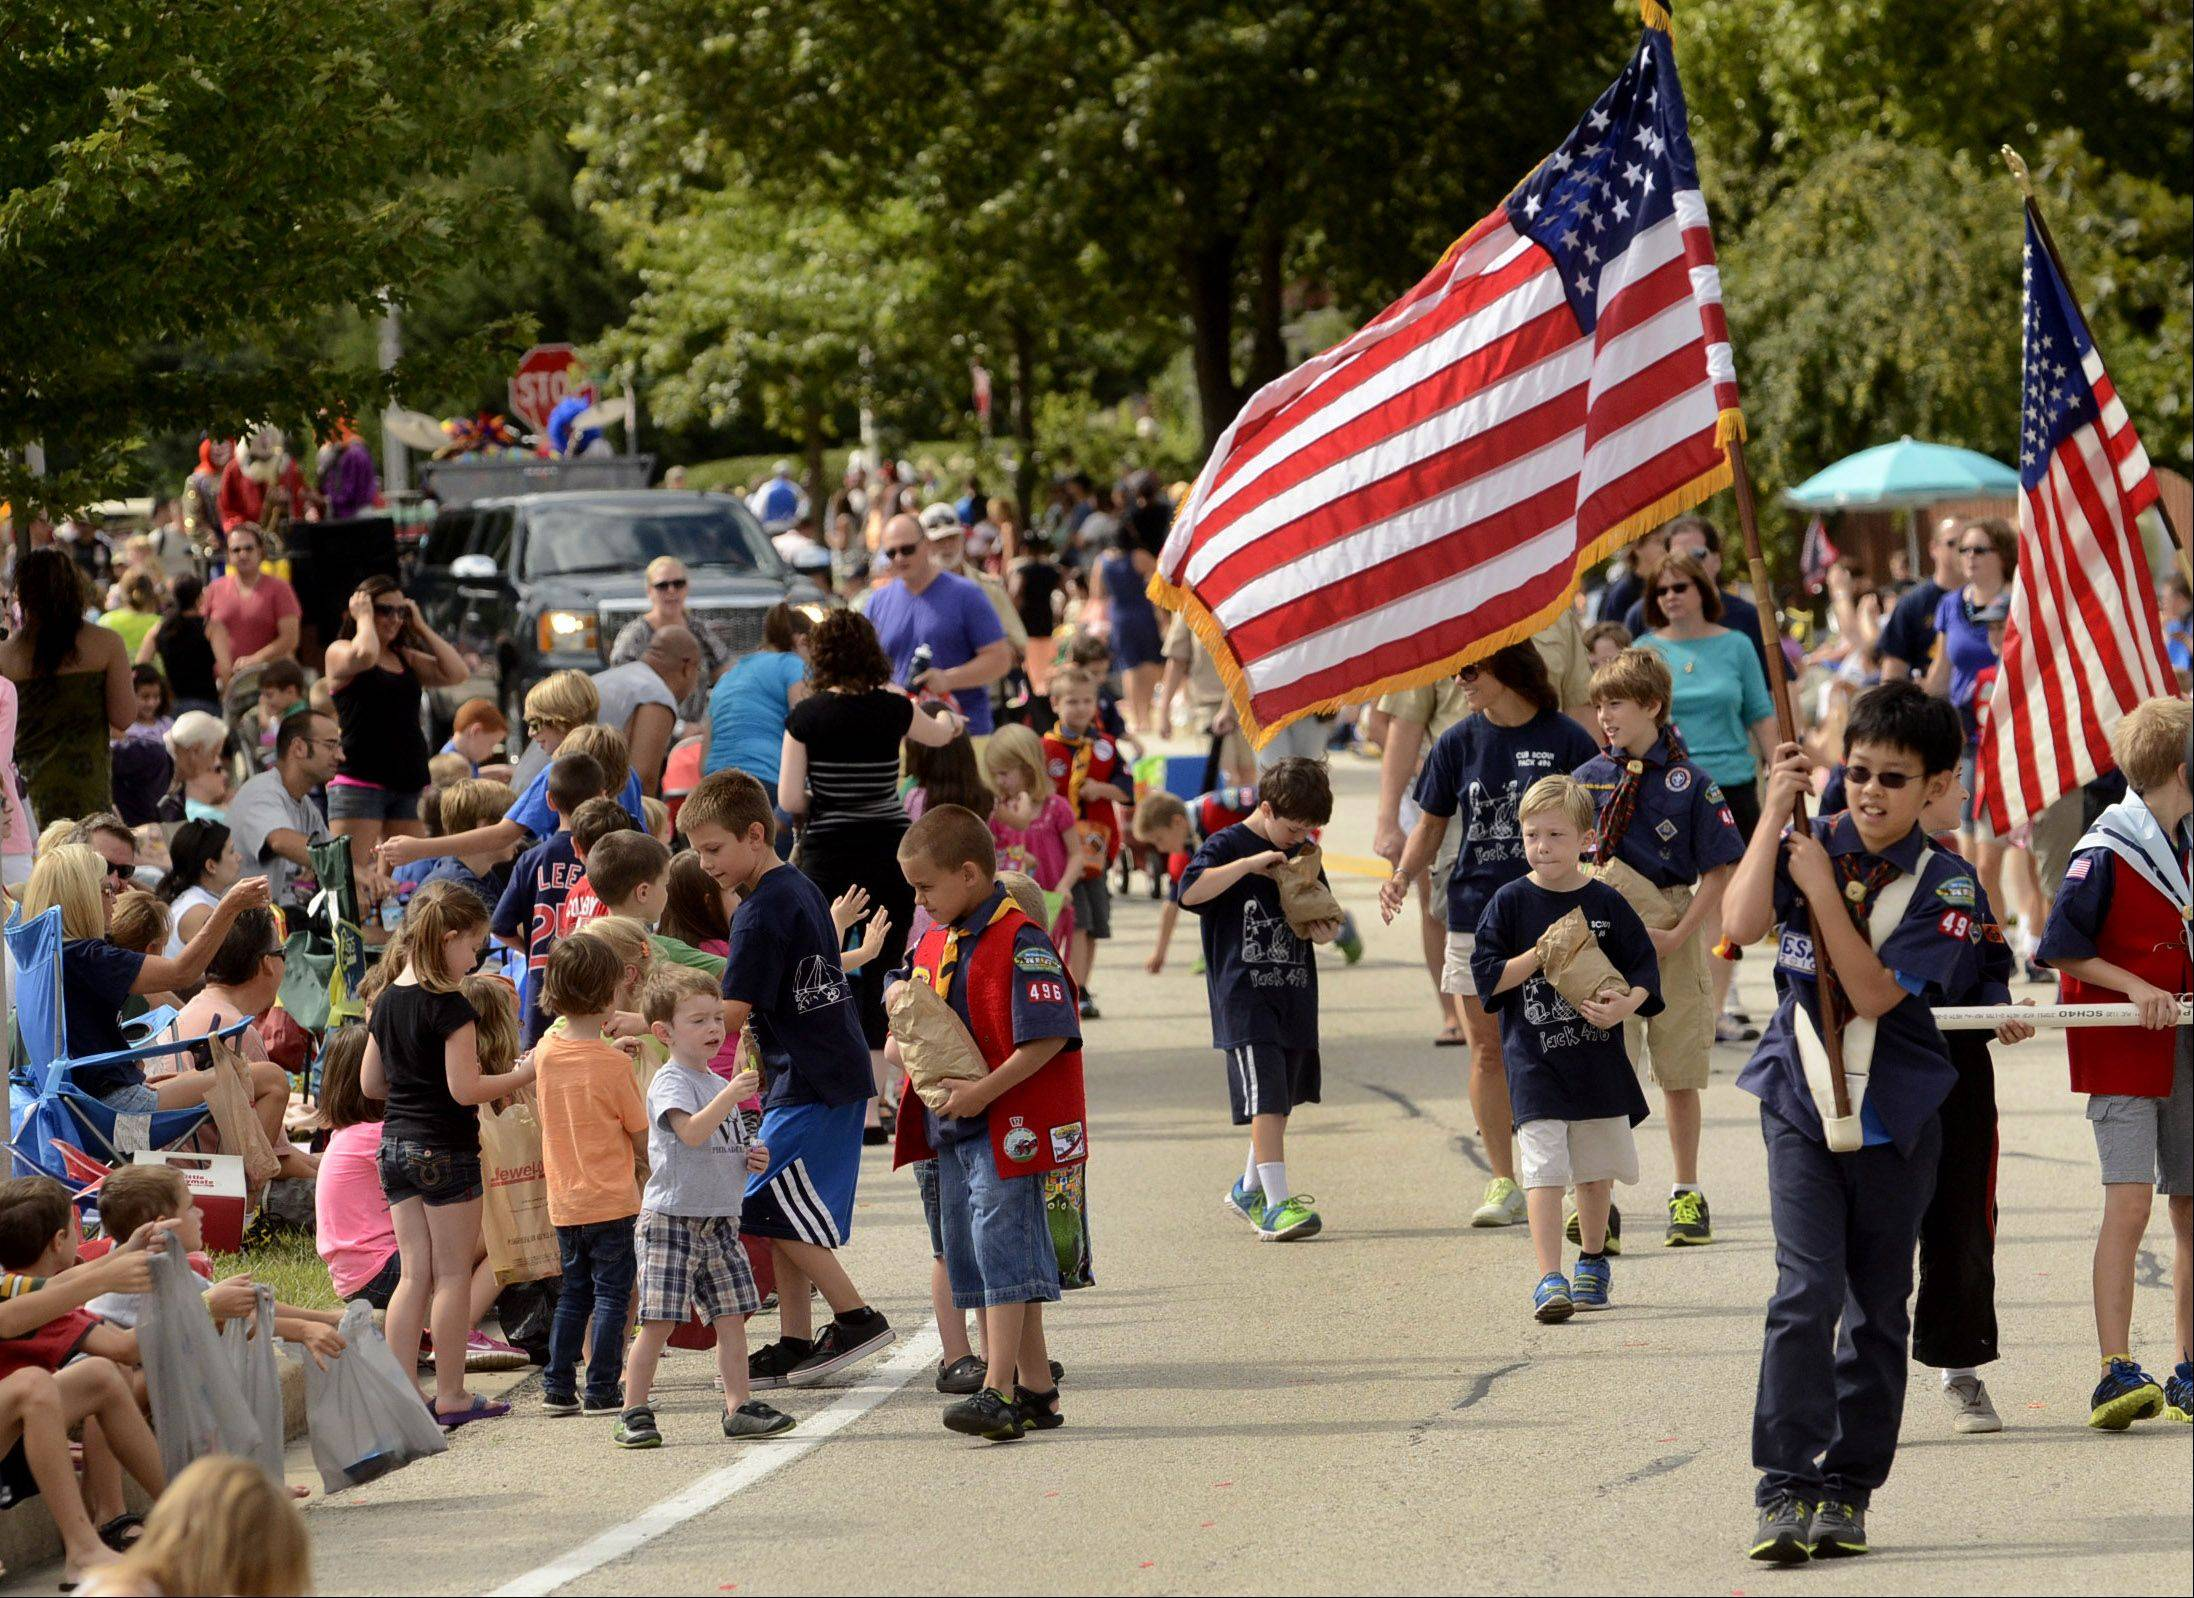 Evan Lee, right, of Cub Scout Pack 496 marches with the American flag during the annual Schaumburg Septemberfest parade.